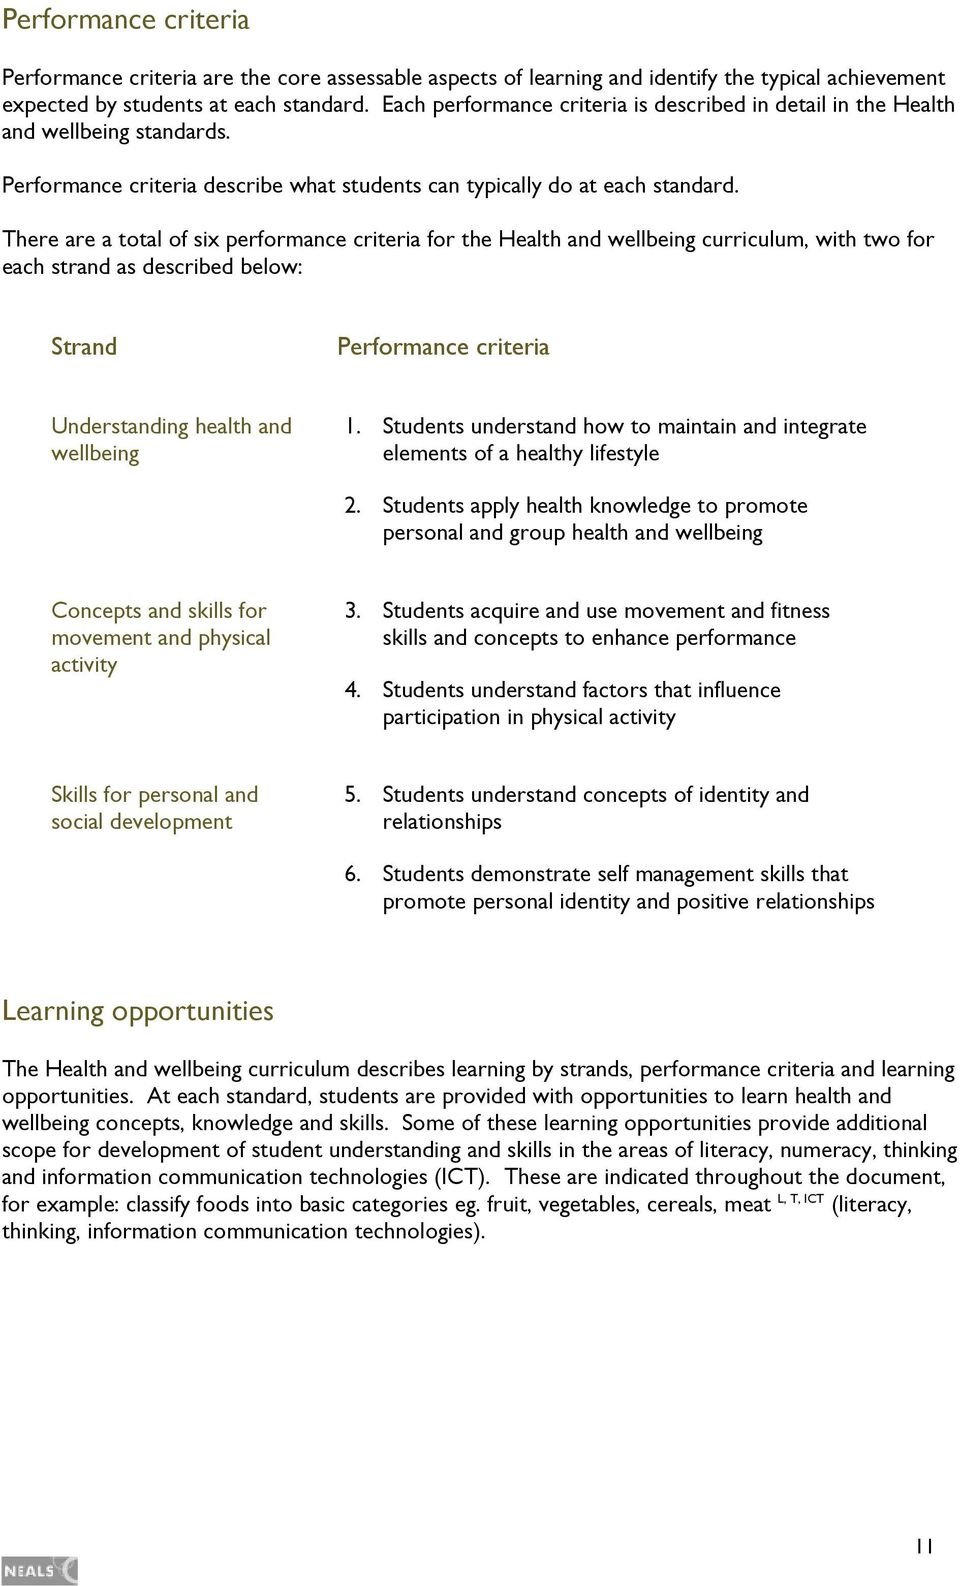 There are a total of six performance criteria for the Health and wellbeing curriculum, with two for each strand as described below: Strand Performance criteria Understanding health and wellbeing 1.